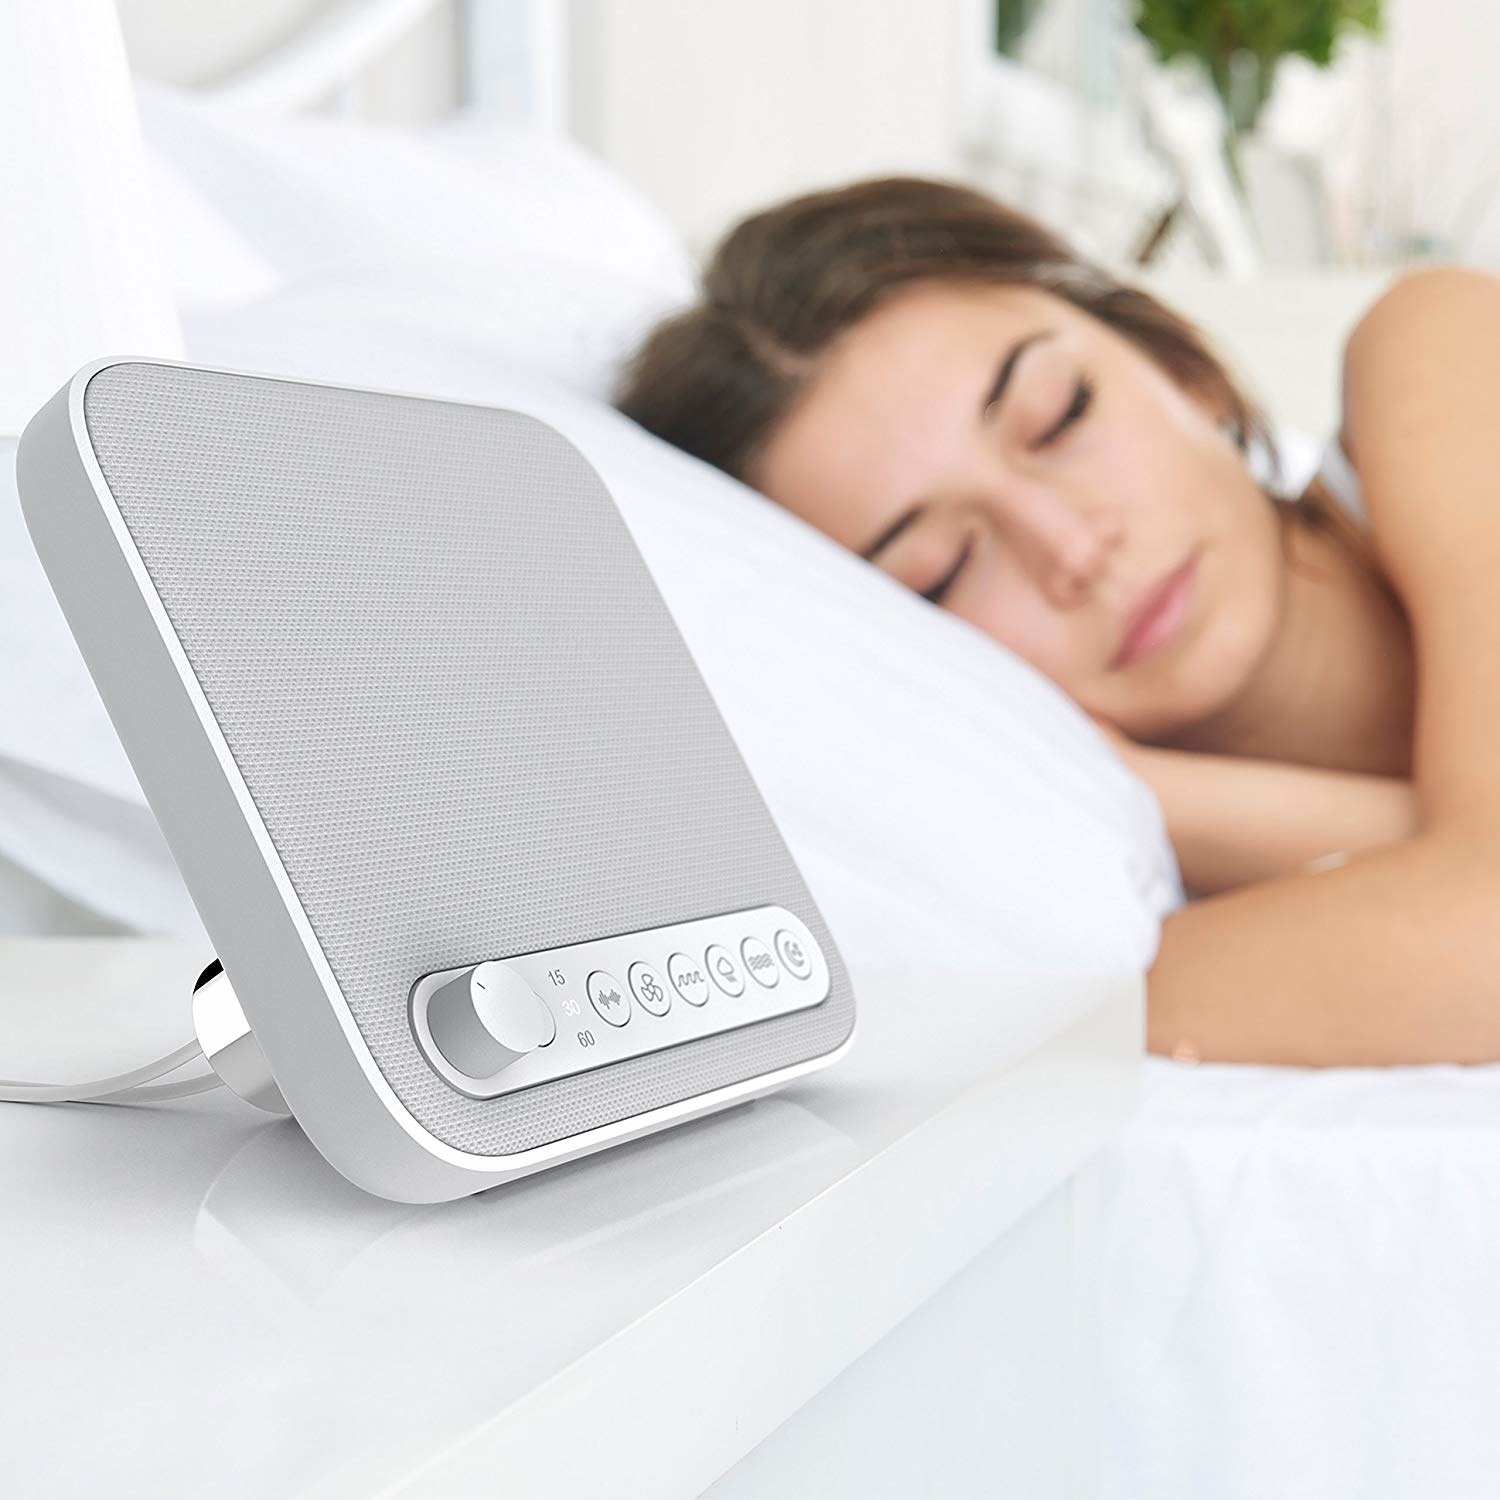 the noise machine on a nightstand next to a sleeping person in bed